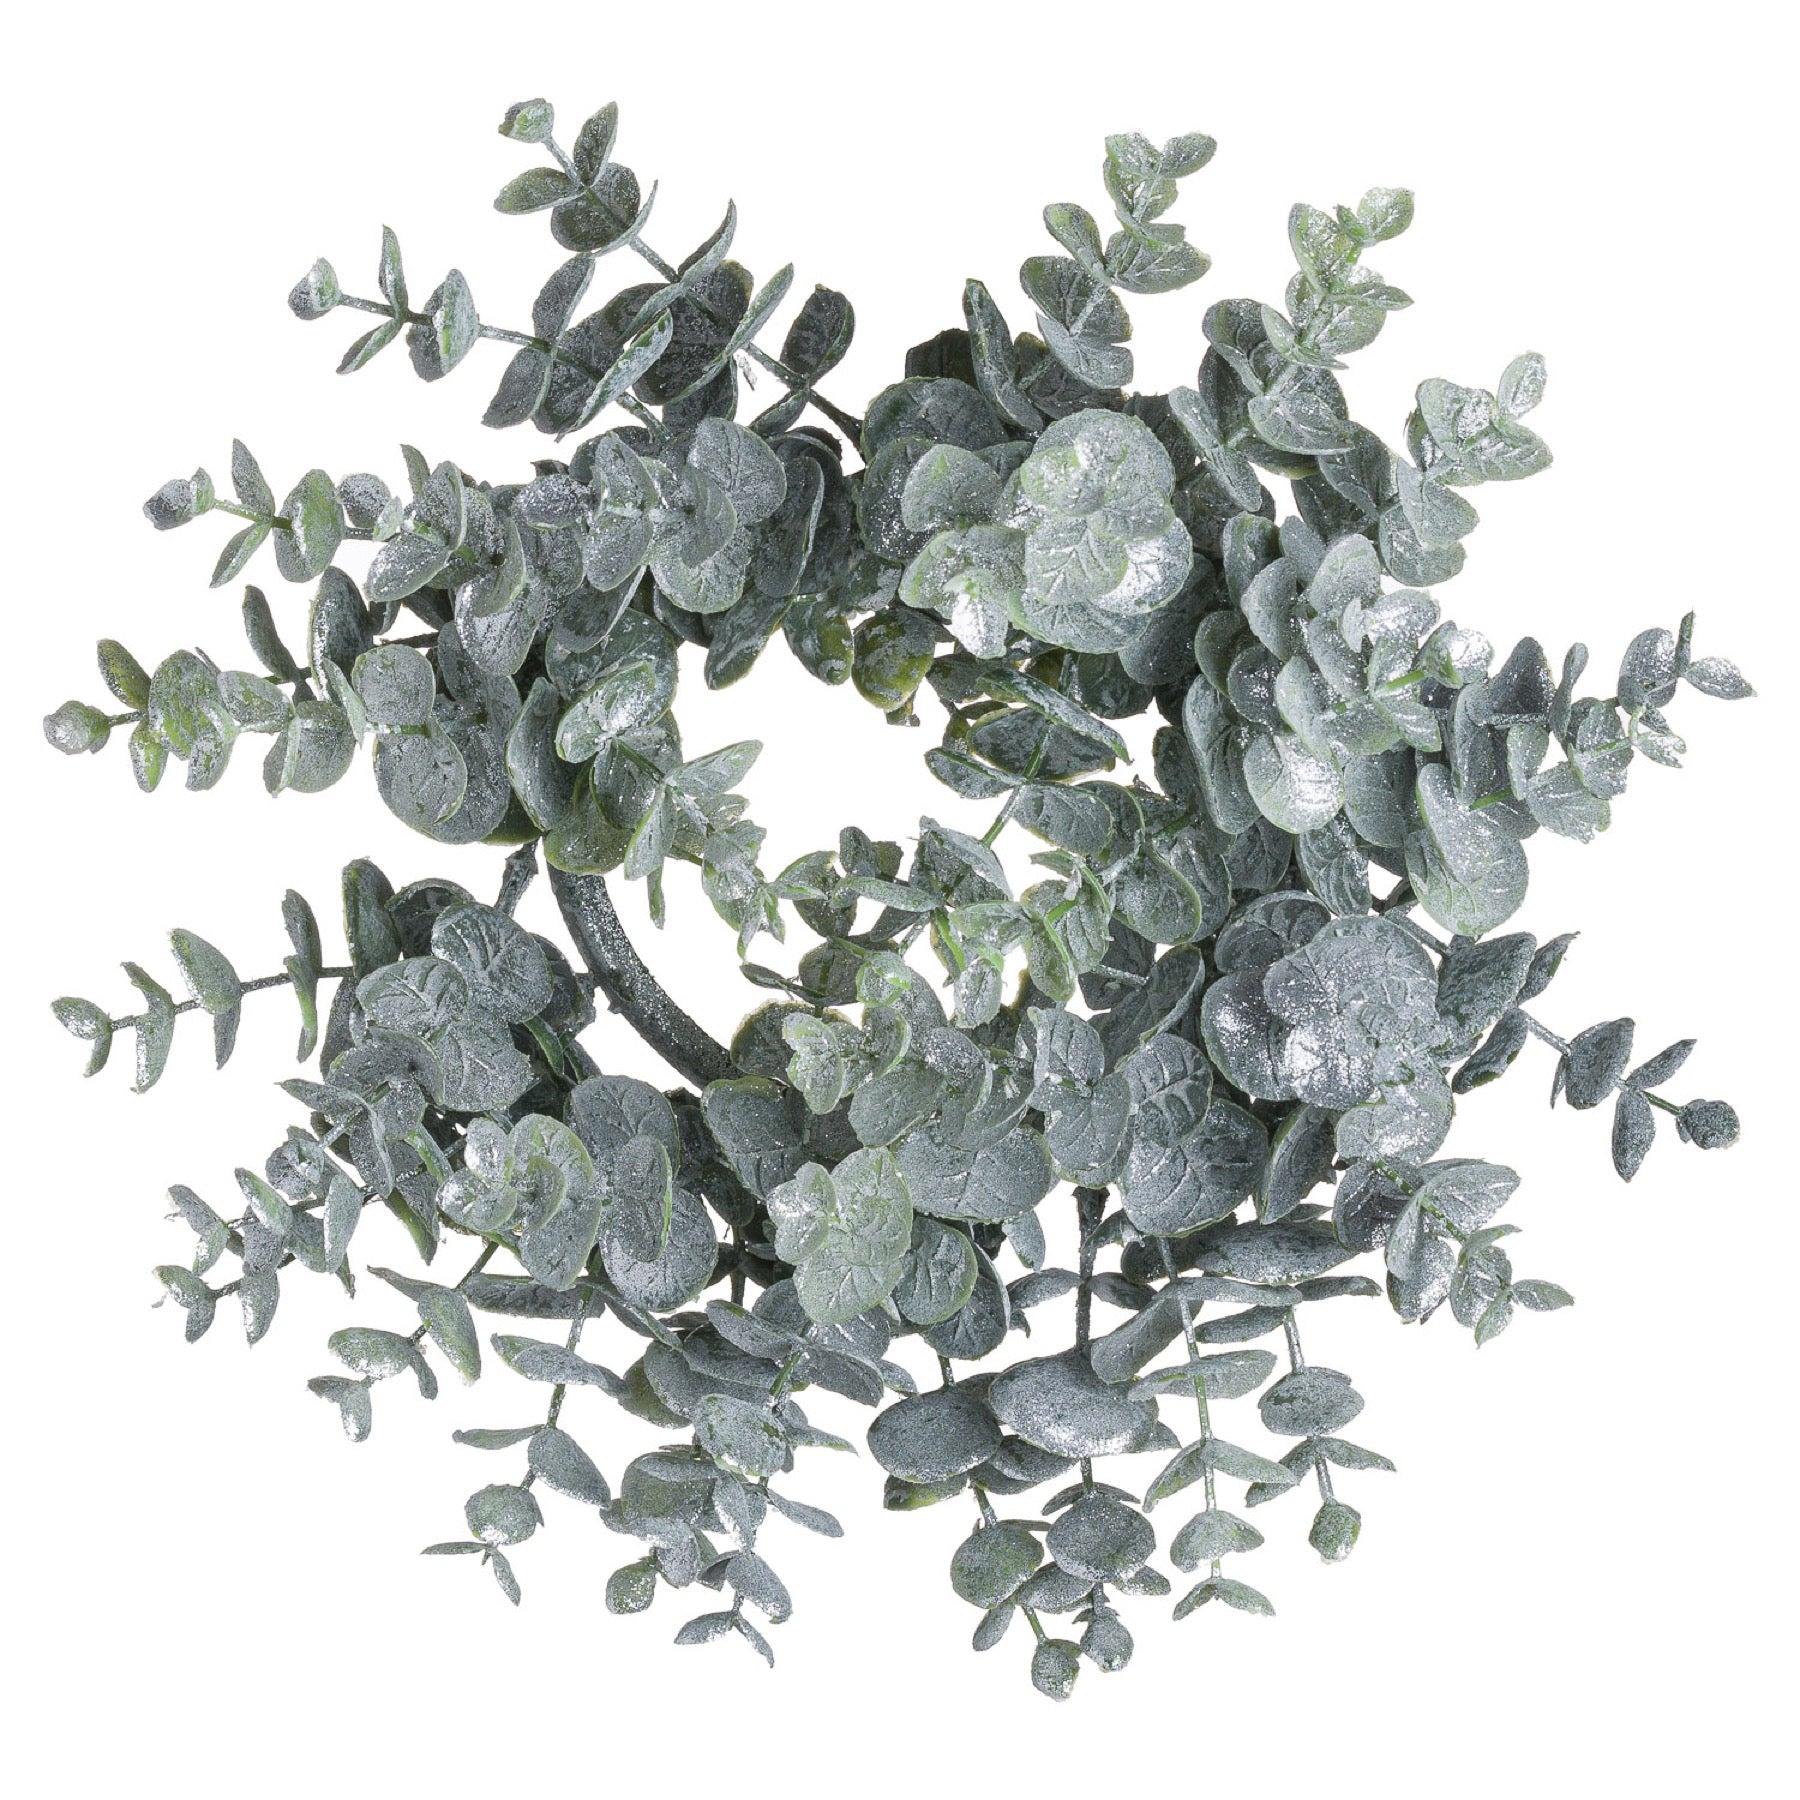 Medium Frosted Eucalyptus Candle Wreath